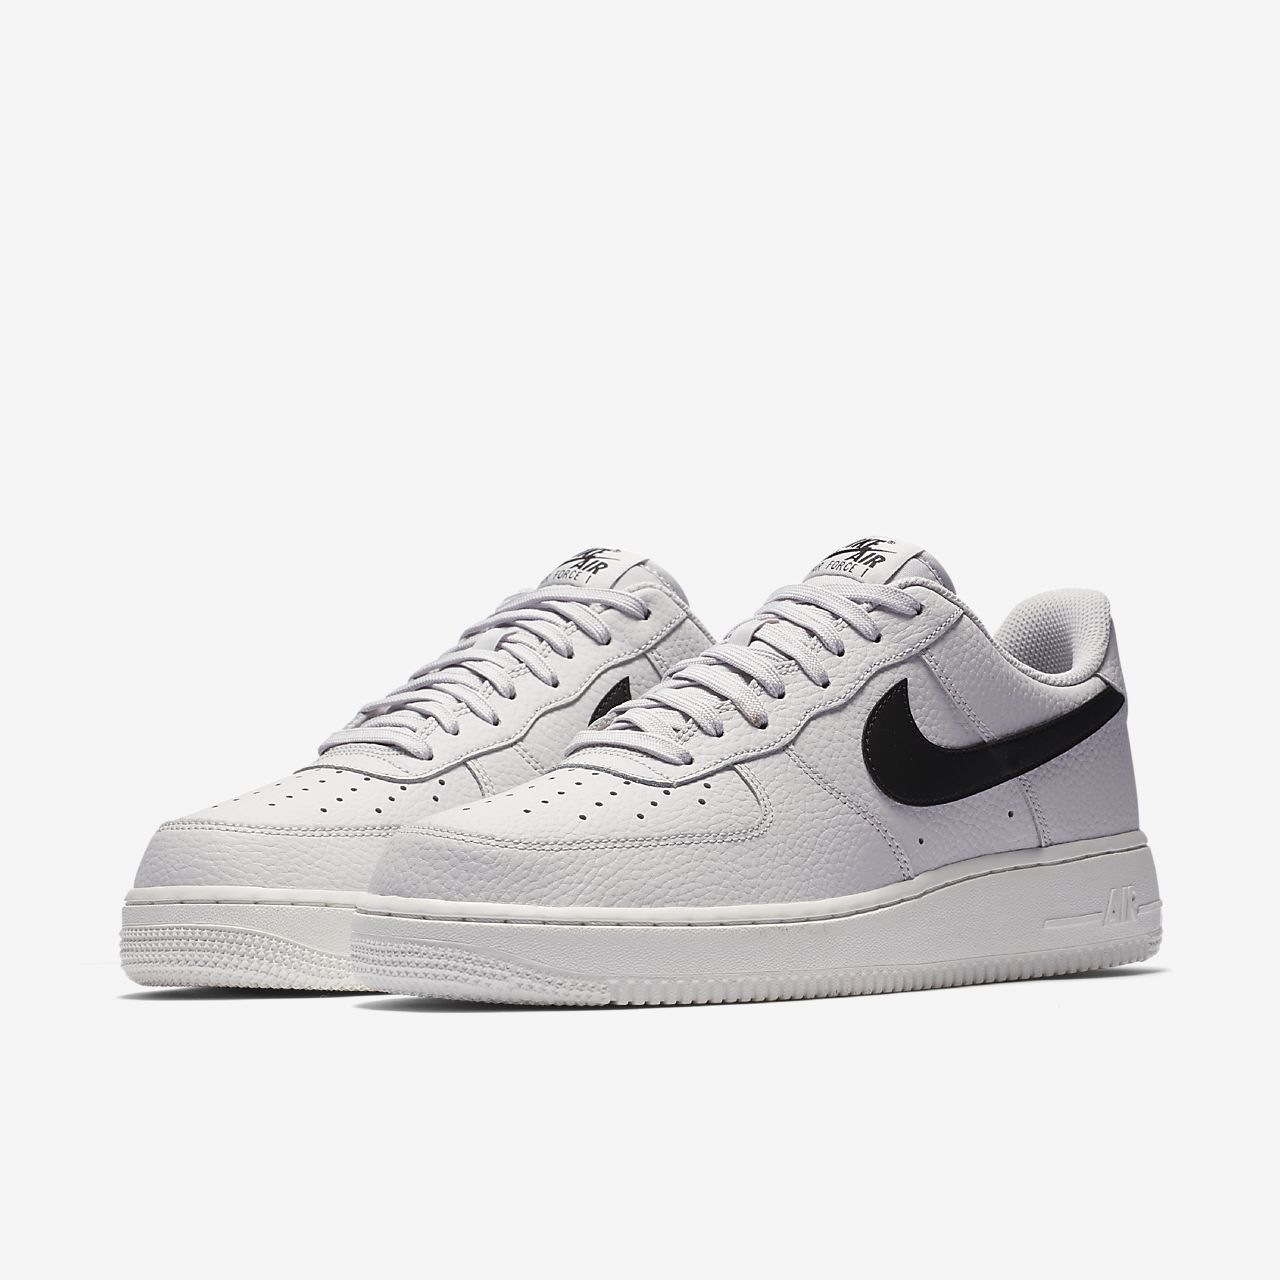 Cheap Wholesale Nike Air Force One Nike AF1 07 Womens Light